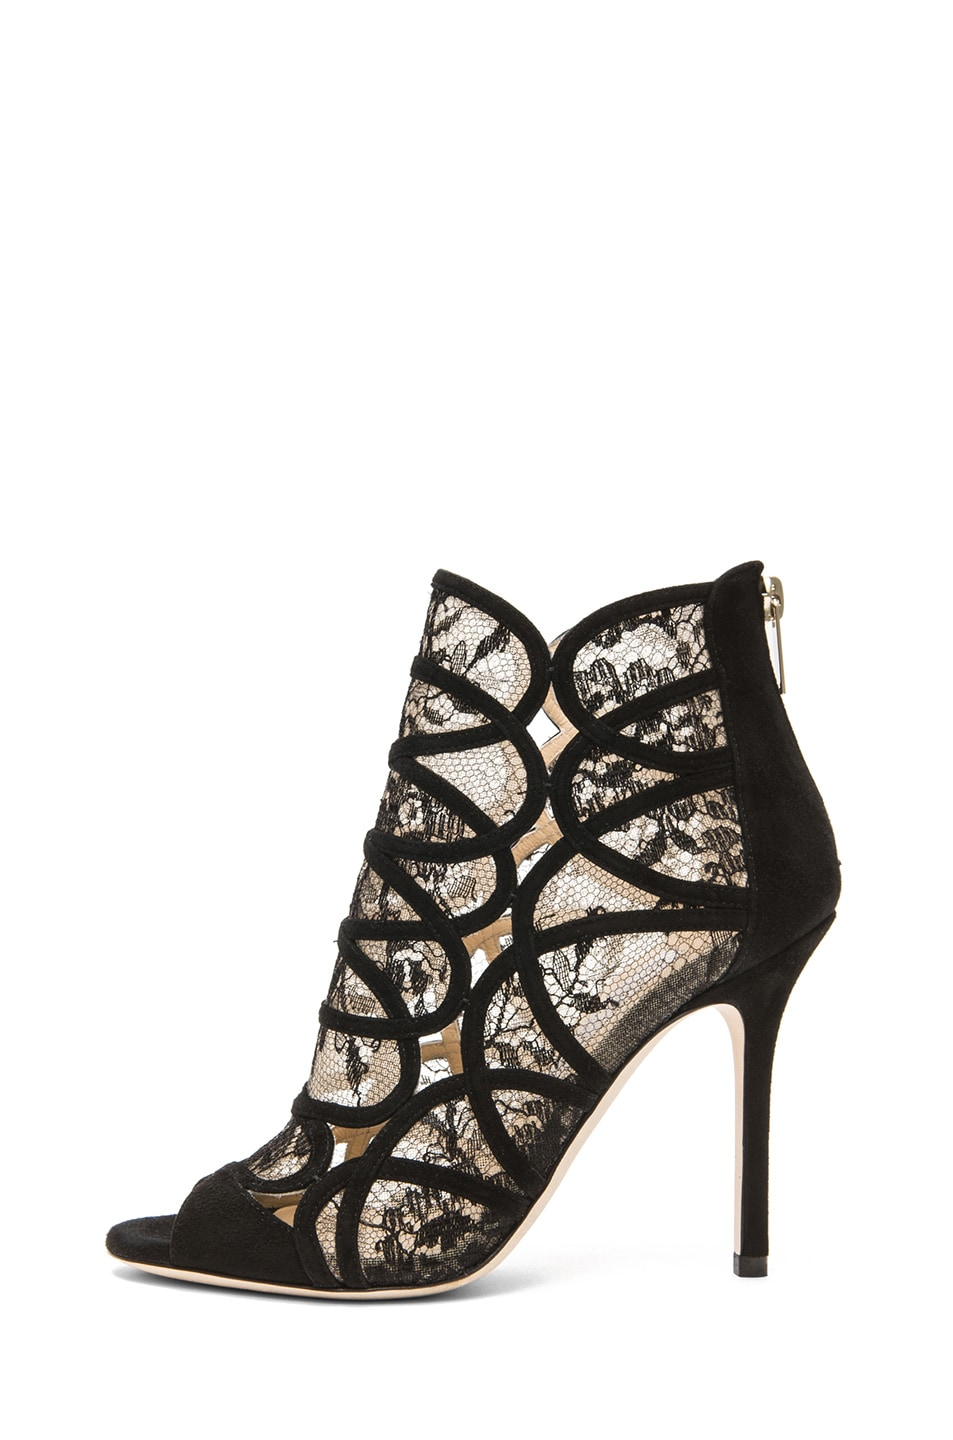 Image 1 of Jimmy Choo Fauna Suede Lace Booties in Black